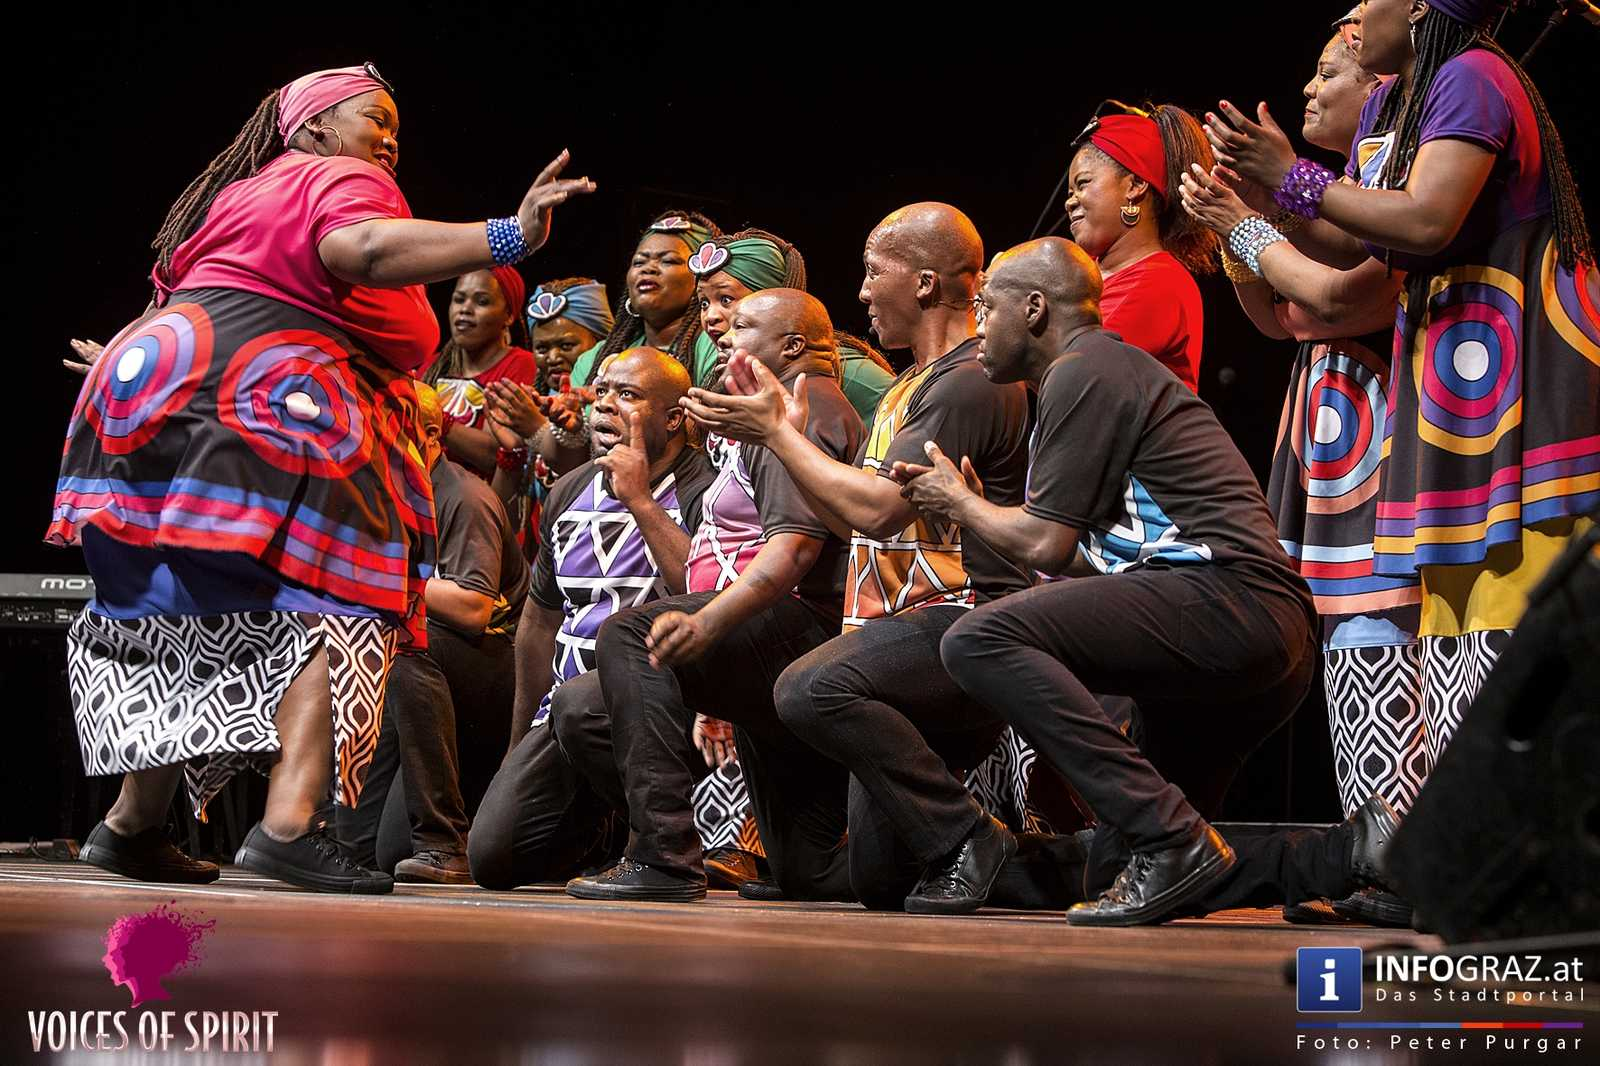 soweto gospel choir internationales chorfestival statdthalle graz voices of spirit eroeffnung festivals 2016 059